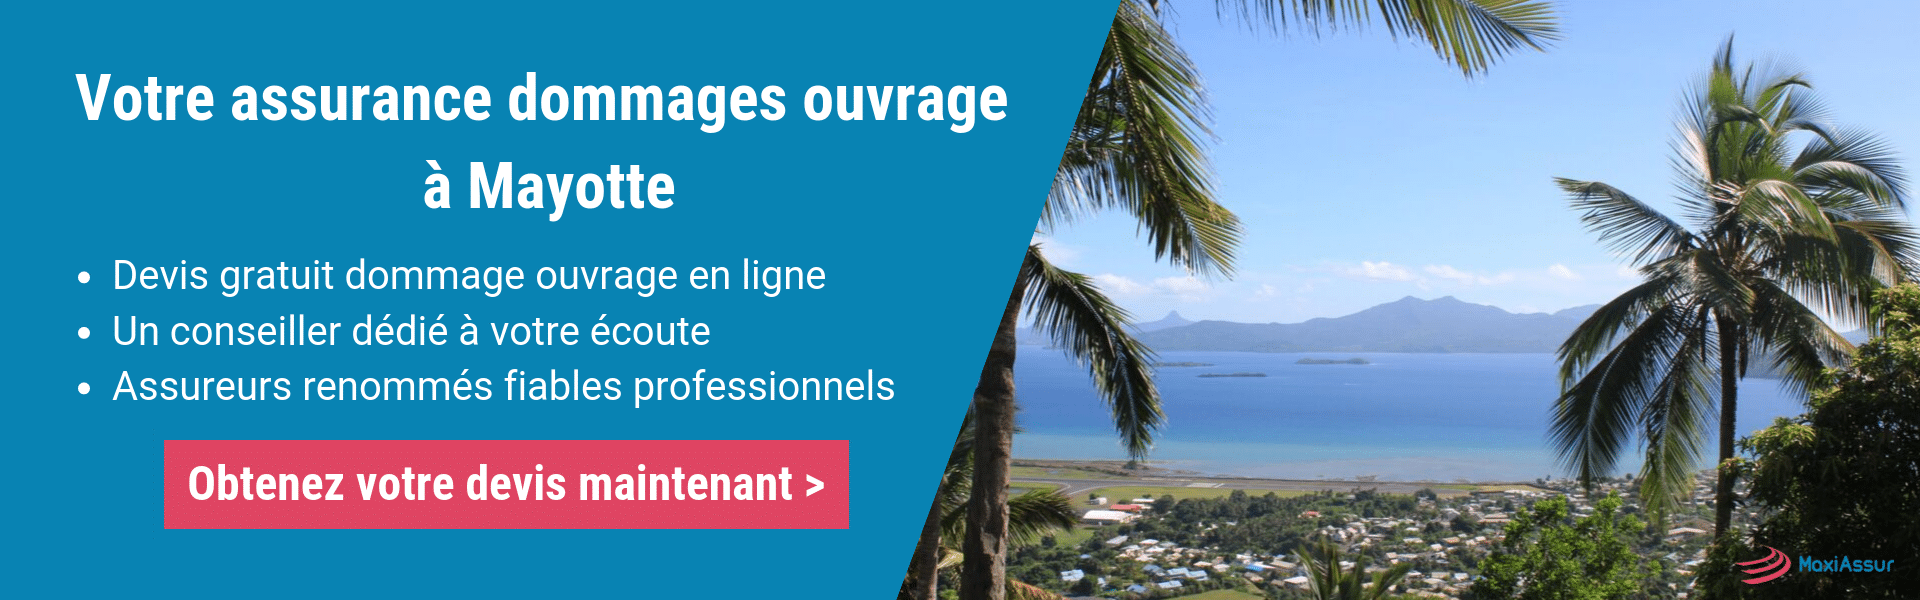 Assurance dommages ouvrage Mayotte